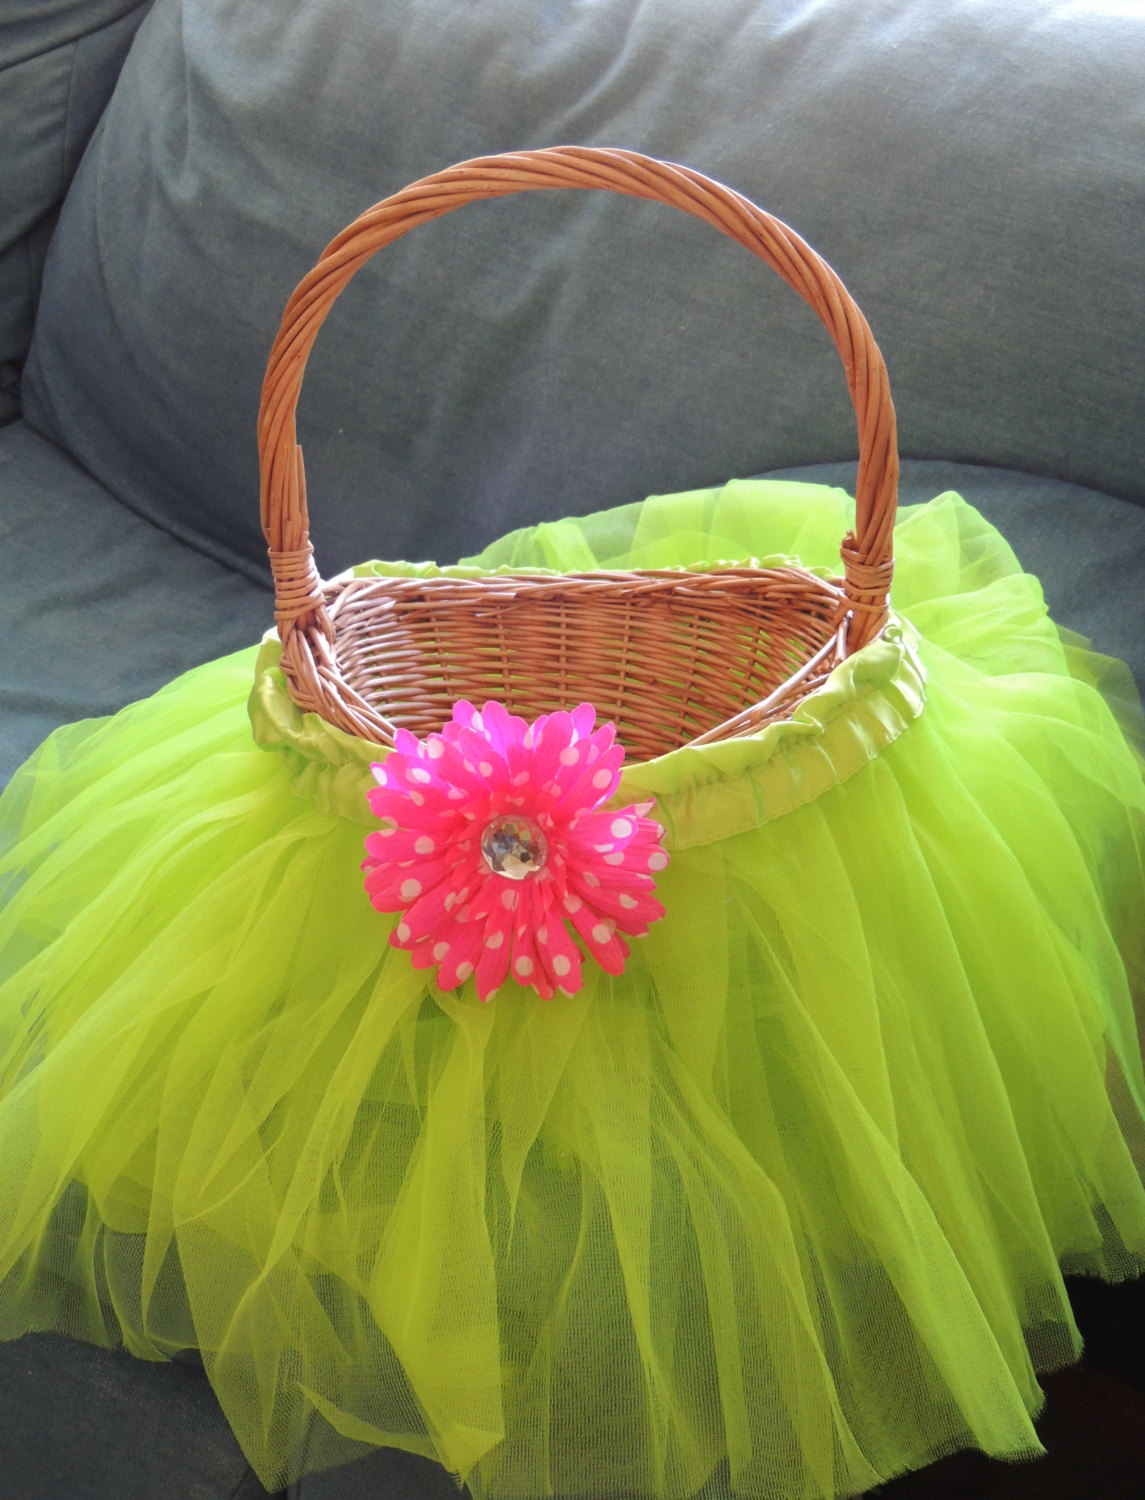 17 Adorable Handmade Easter Basket Designs Style Motivation